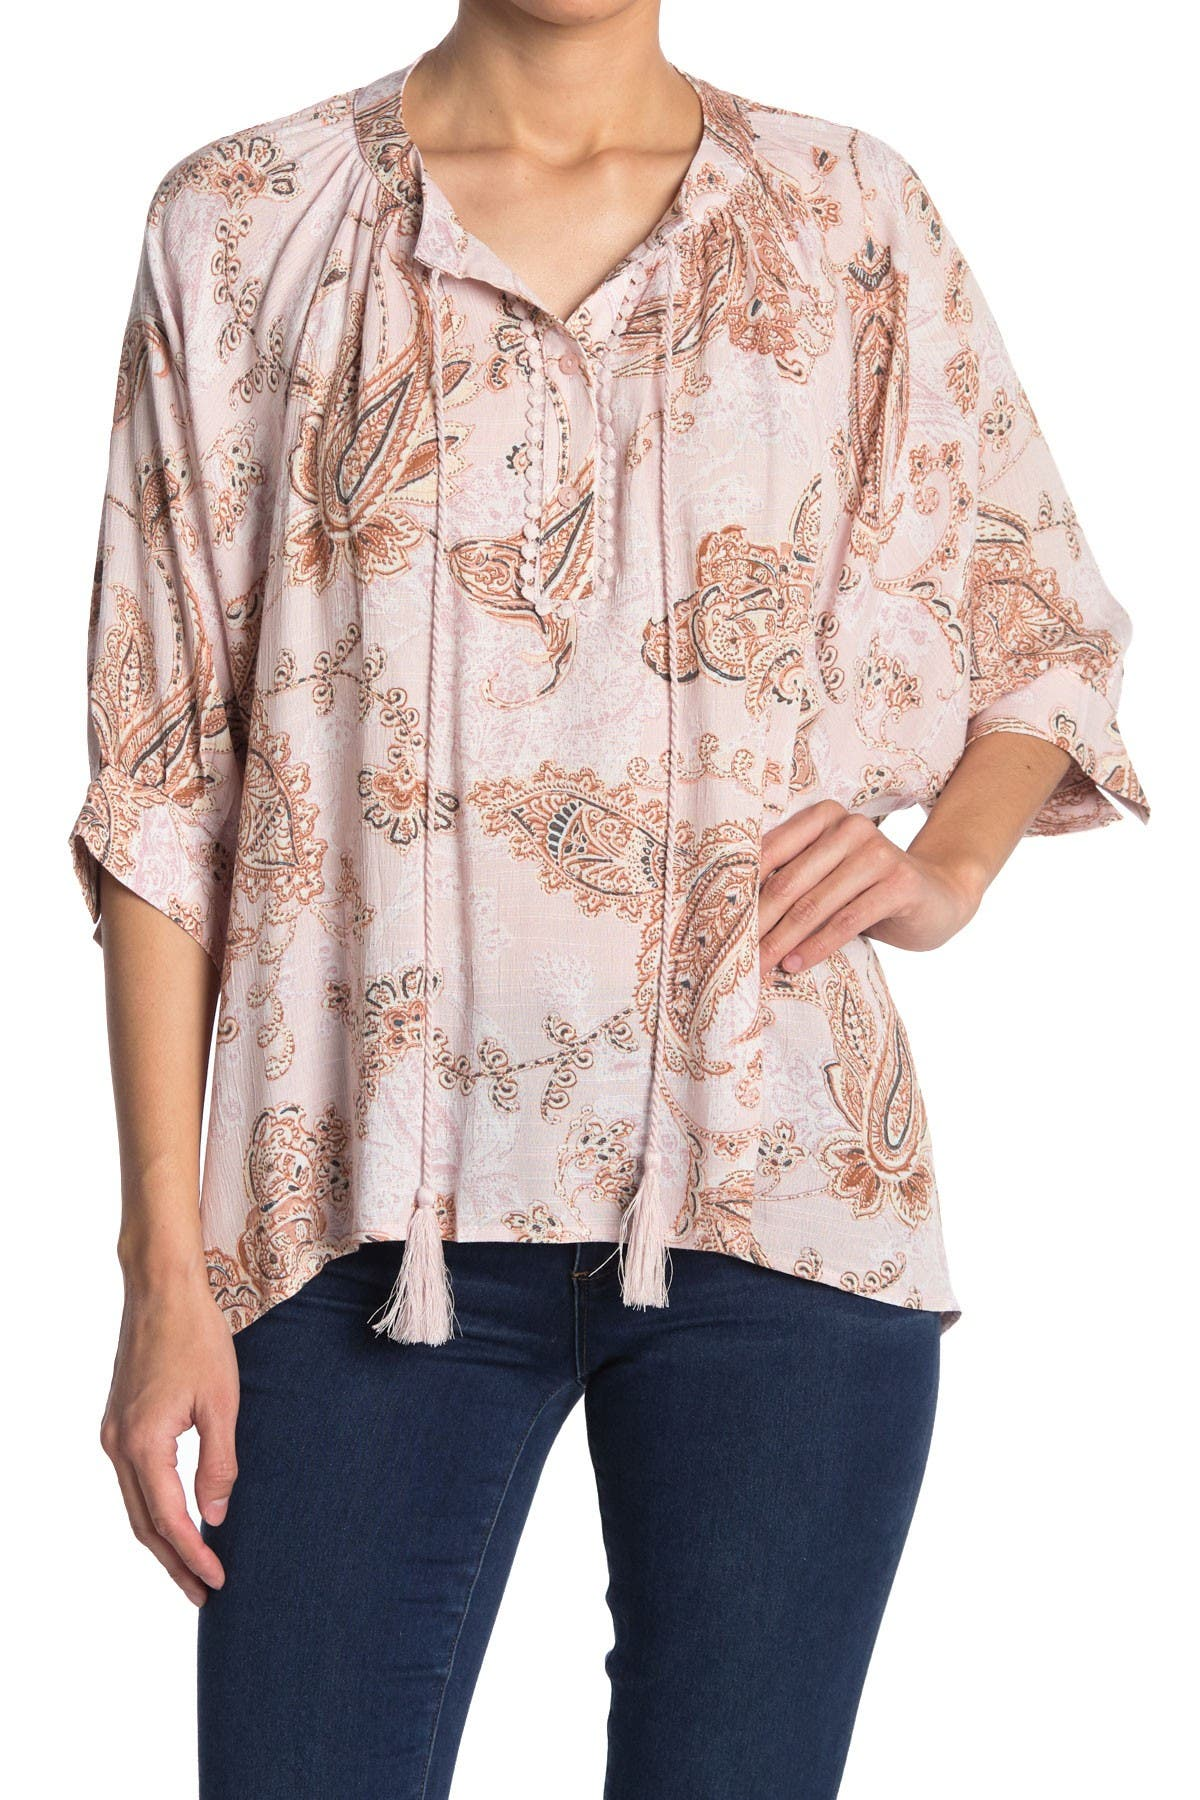 Image of Everleigh Organza-Like Tassel and Crochet Blouse